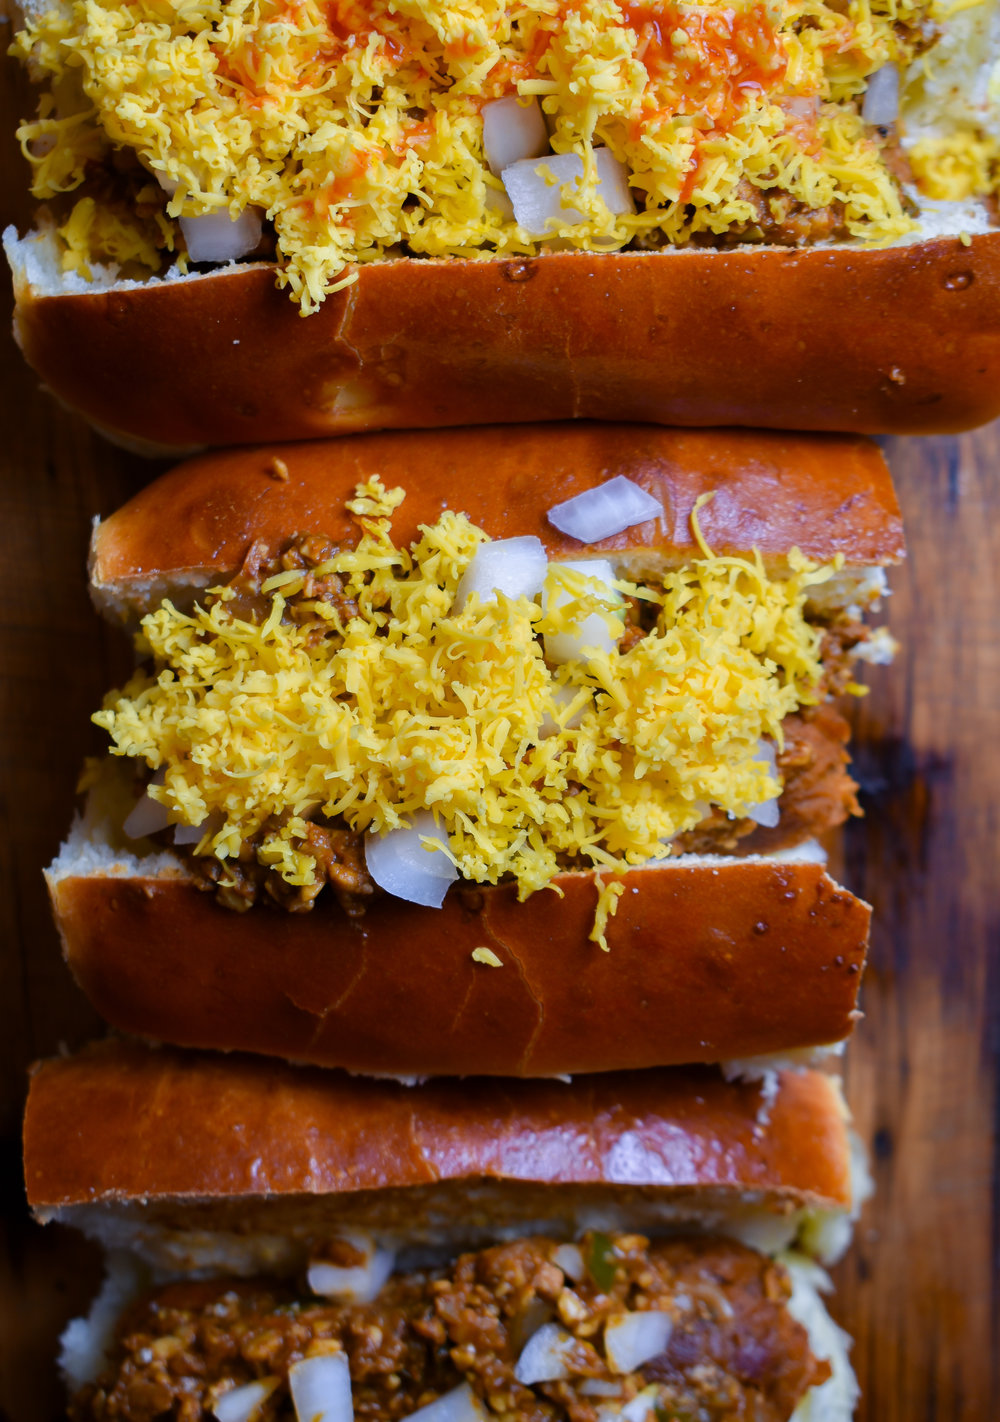 12. To finish, toast your hot dog buns and layer on hot dog, chili, chopped white onions (optional), and cheese. I like to finish mine with some Louisiana hot sauce!